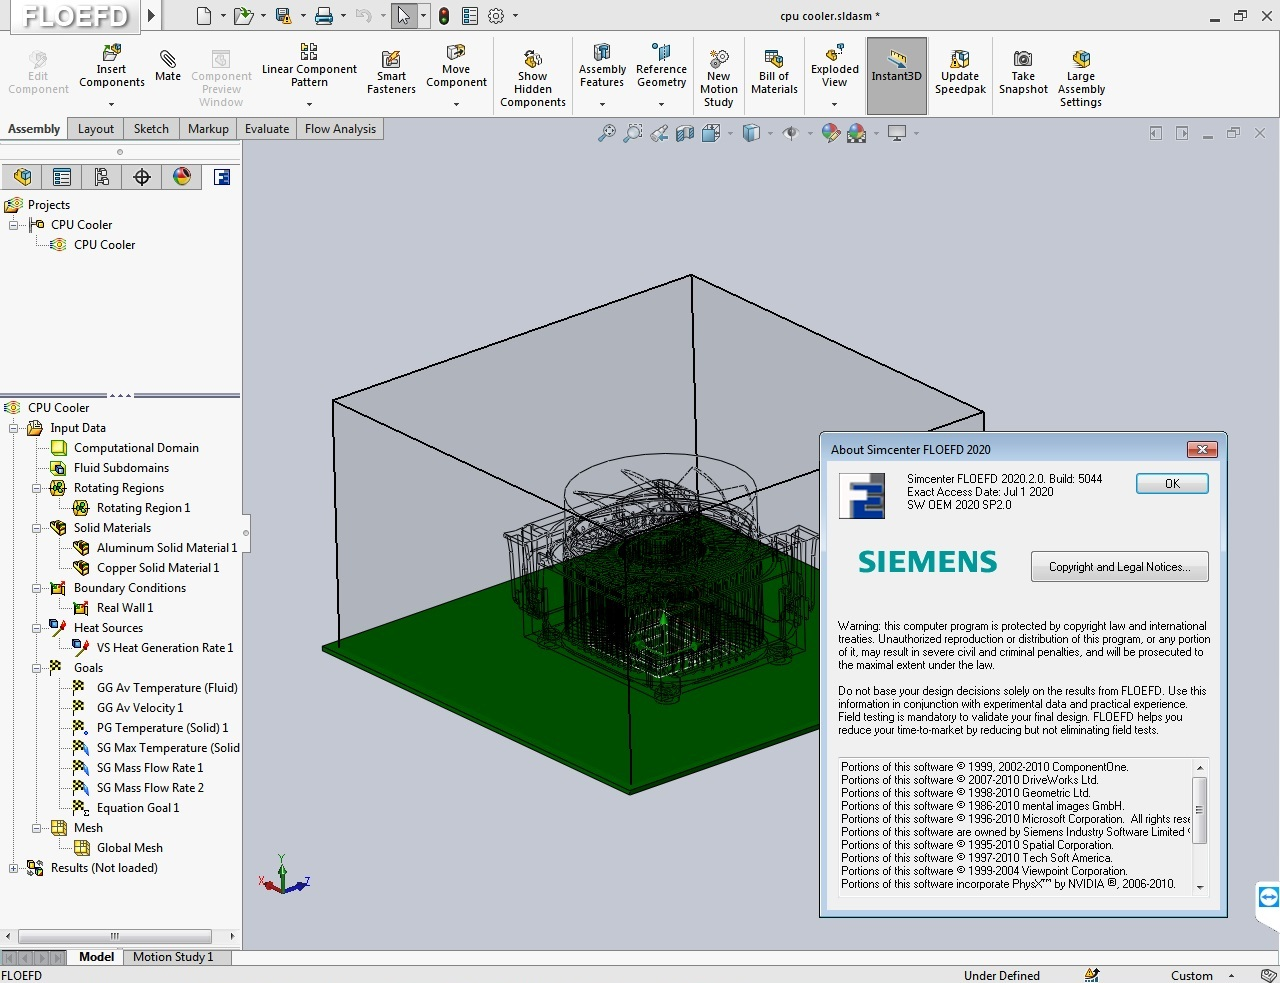 Working with Siemens Simcenter FloEFD 2020.2.0 v5054 full license